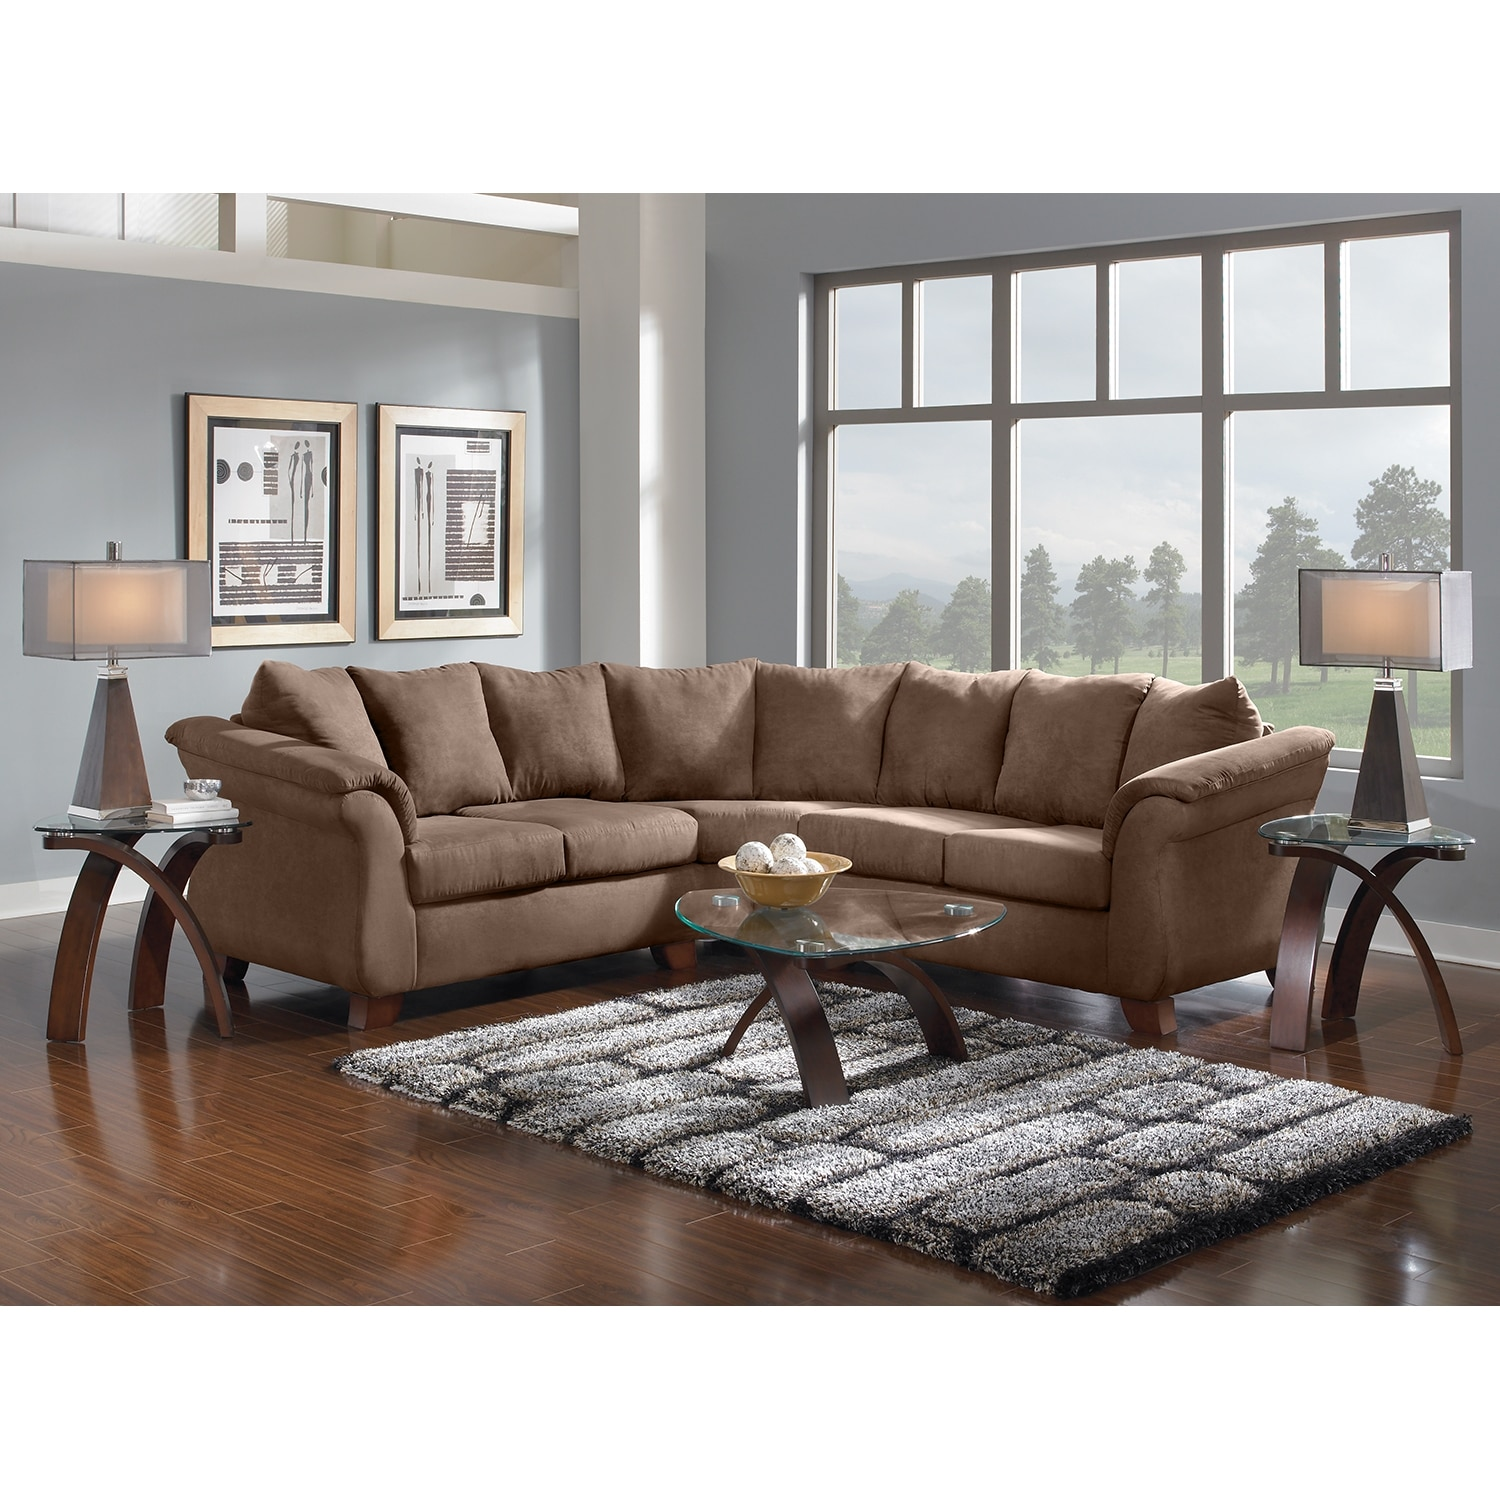 Adrian 2 piece sectional taupe value city furniture for Living room furniture pieces